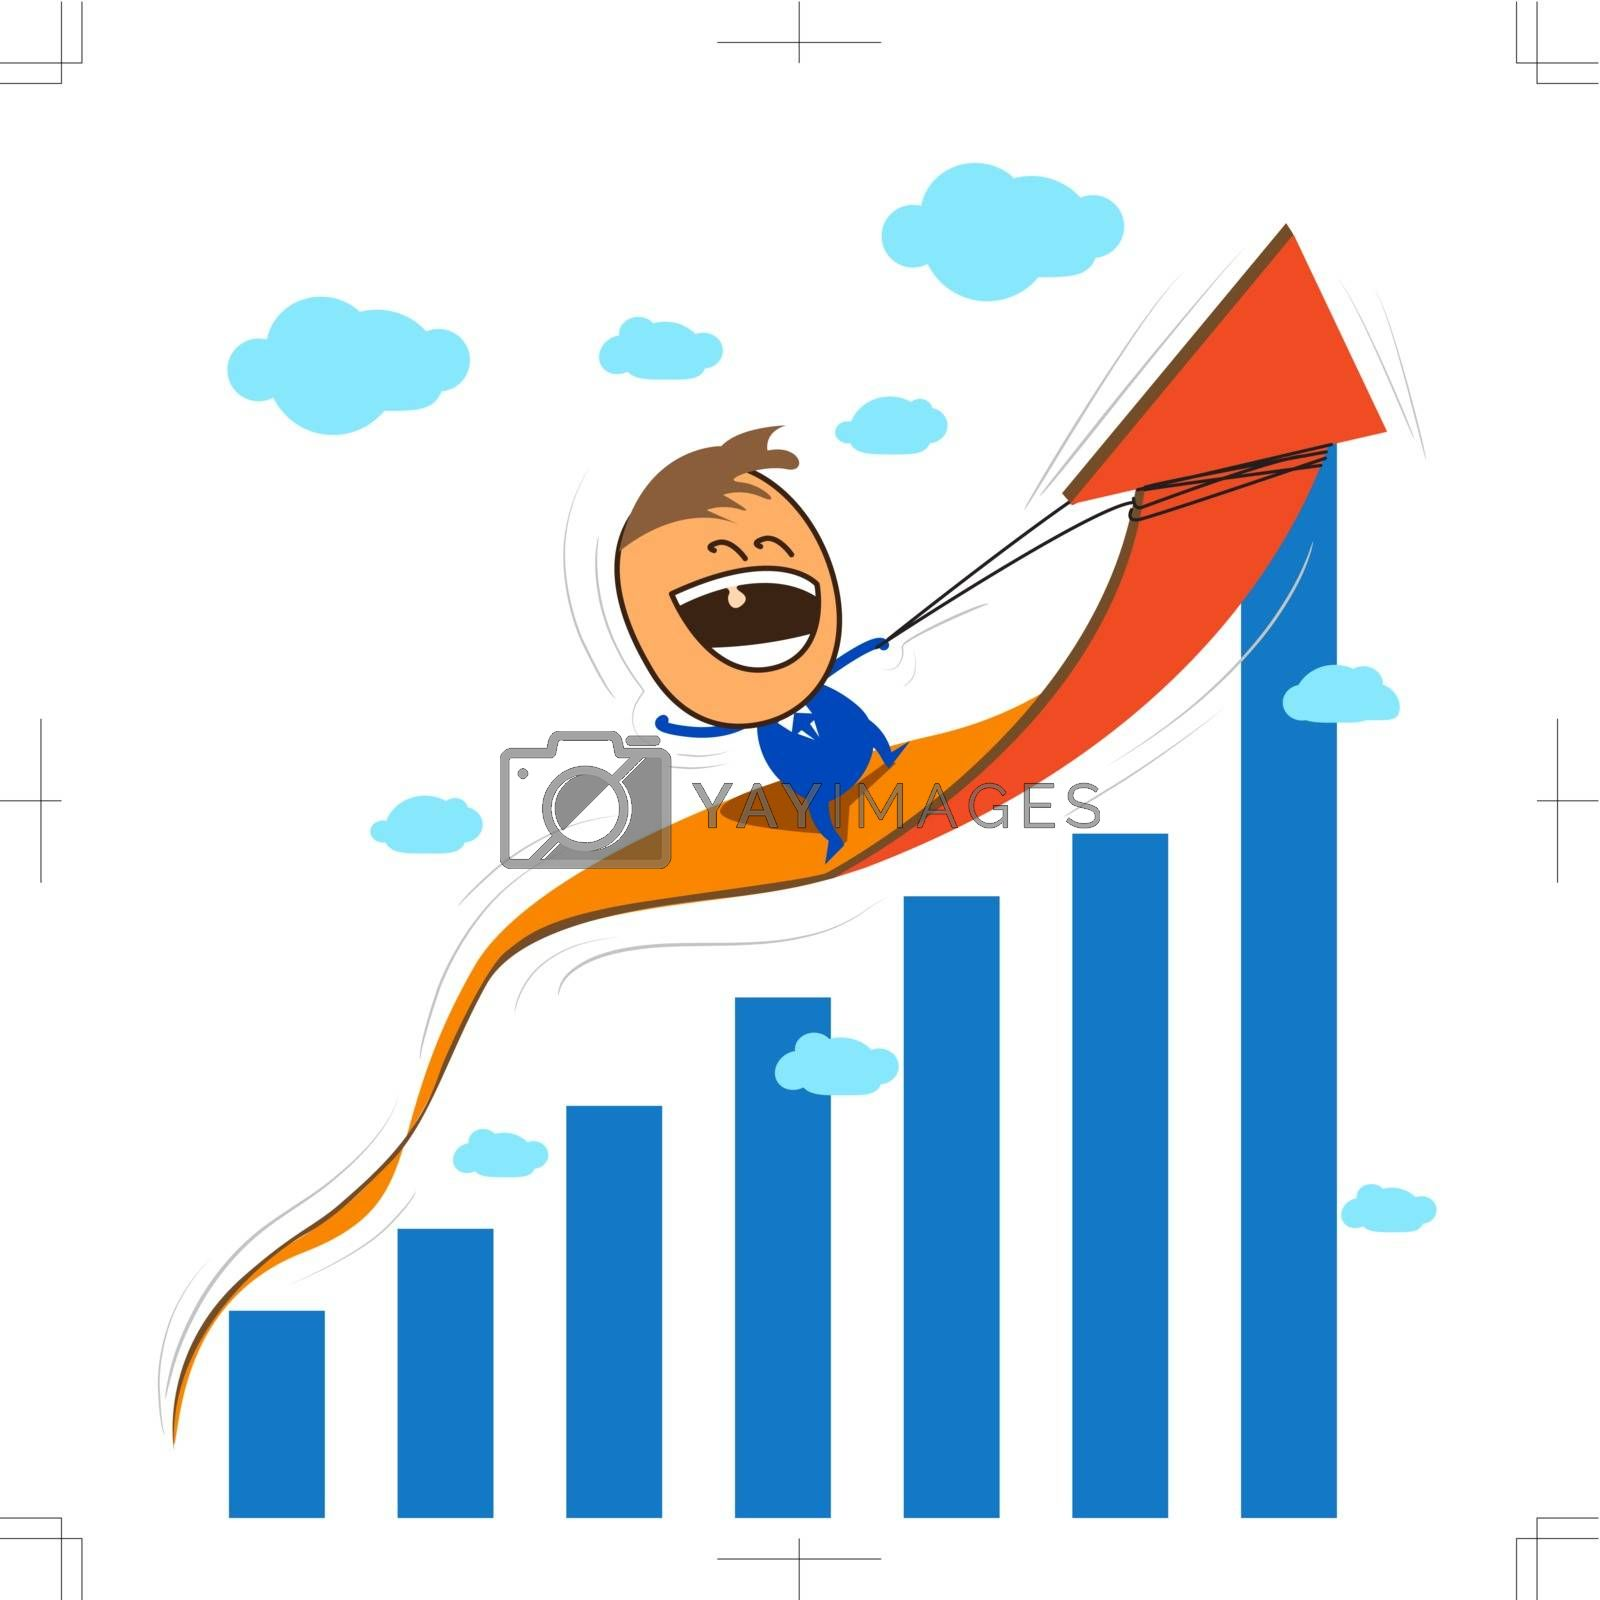 Business concept in growth economy or financial situation.